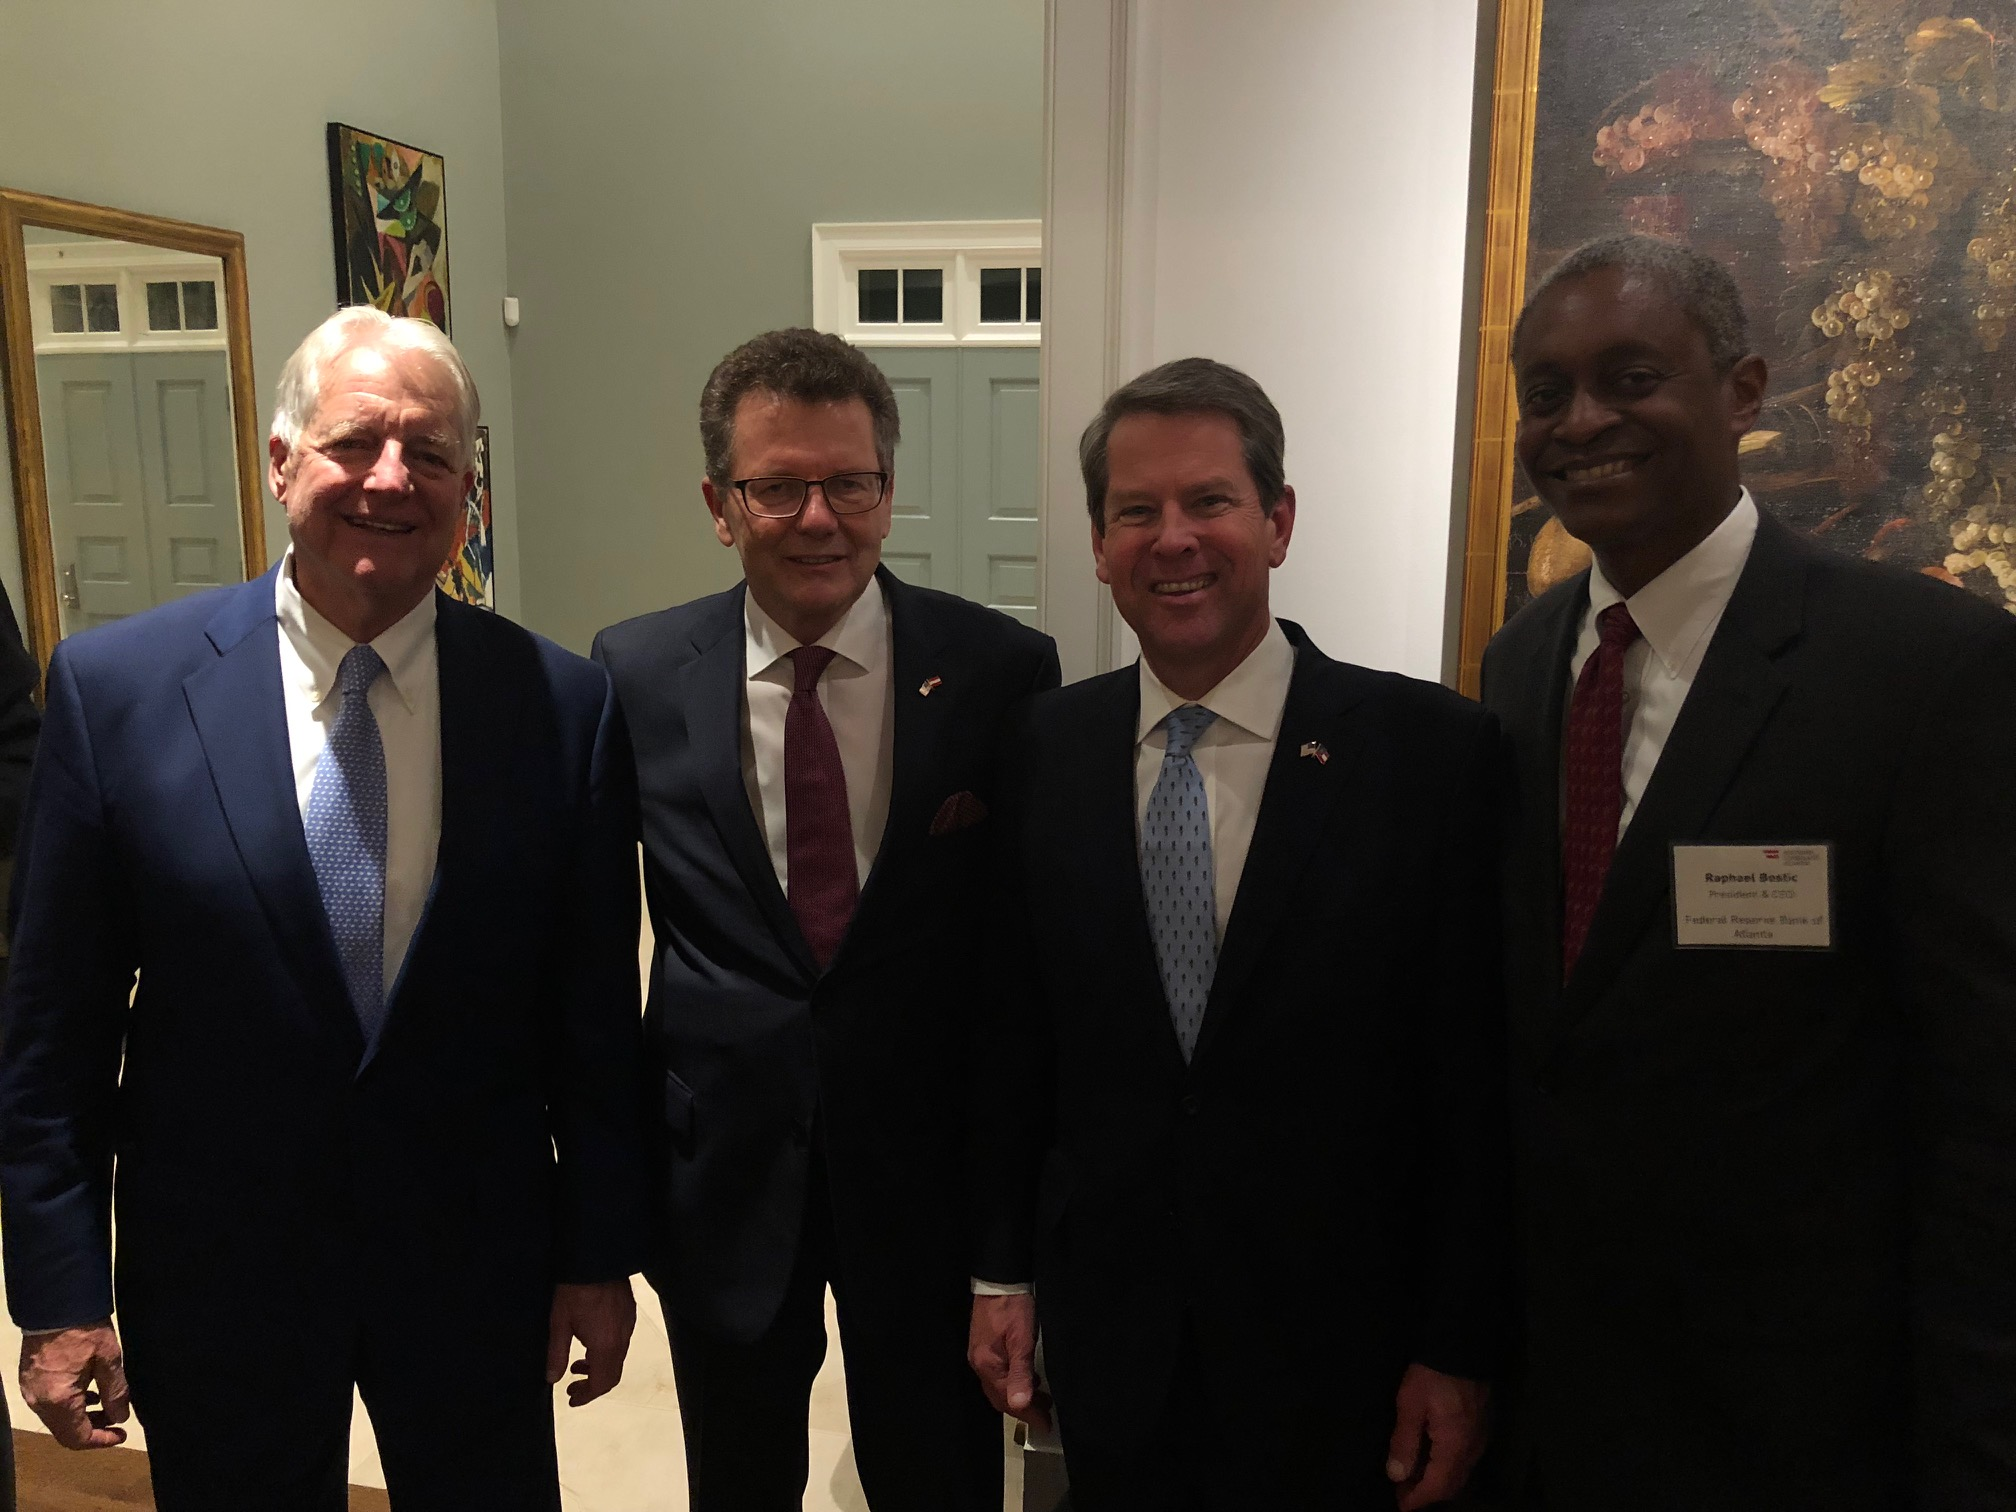 Reception at the Residence of the Austrian Honorary Consul  from left: Austrian Honorary Consul General Ferdinand C. Seefried, Ambassador Waldner, Georgia Governor-elect Brian Kemp, and Atlanta Federal Reserve Bank President Raphael Bostic